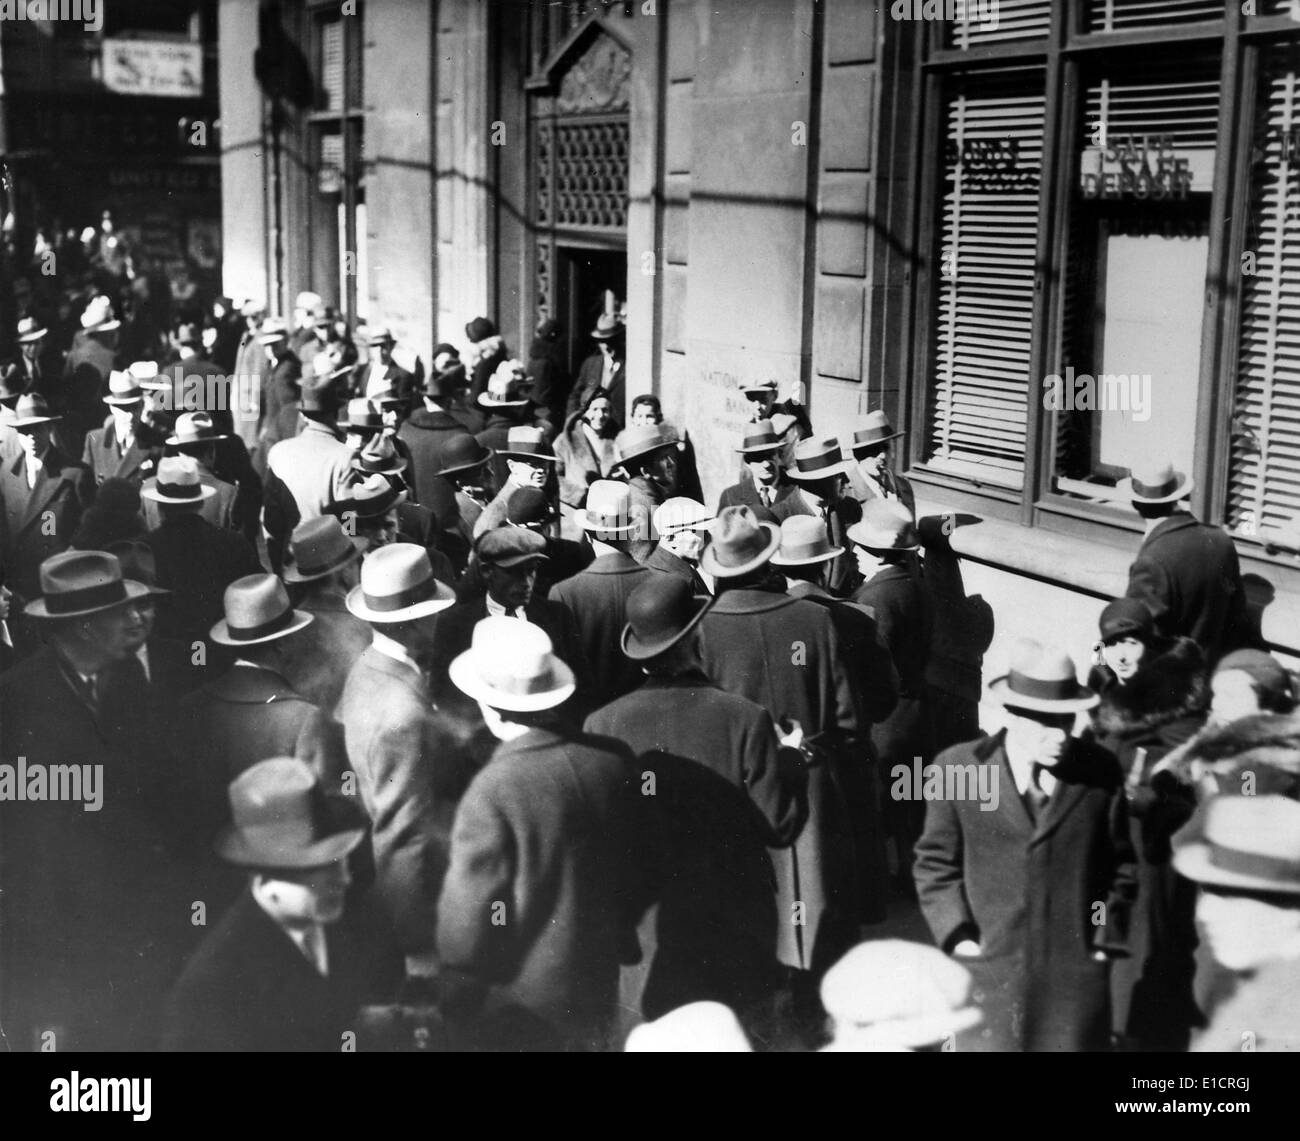 The Great Depression. Men on the street during a bank run. - Stock Image